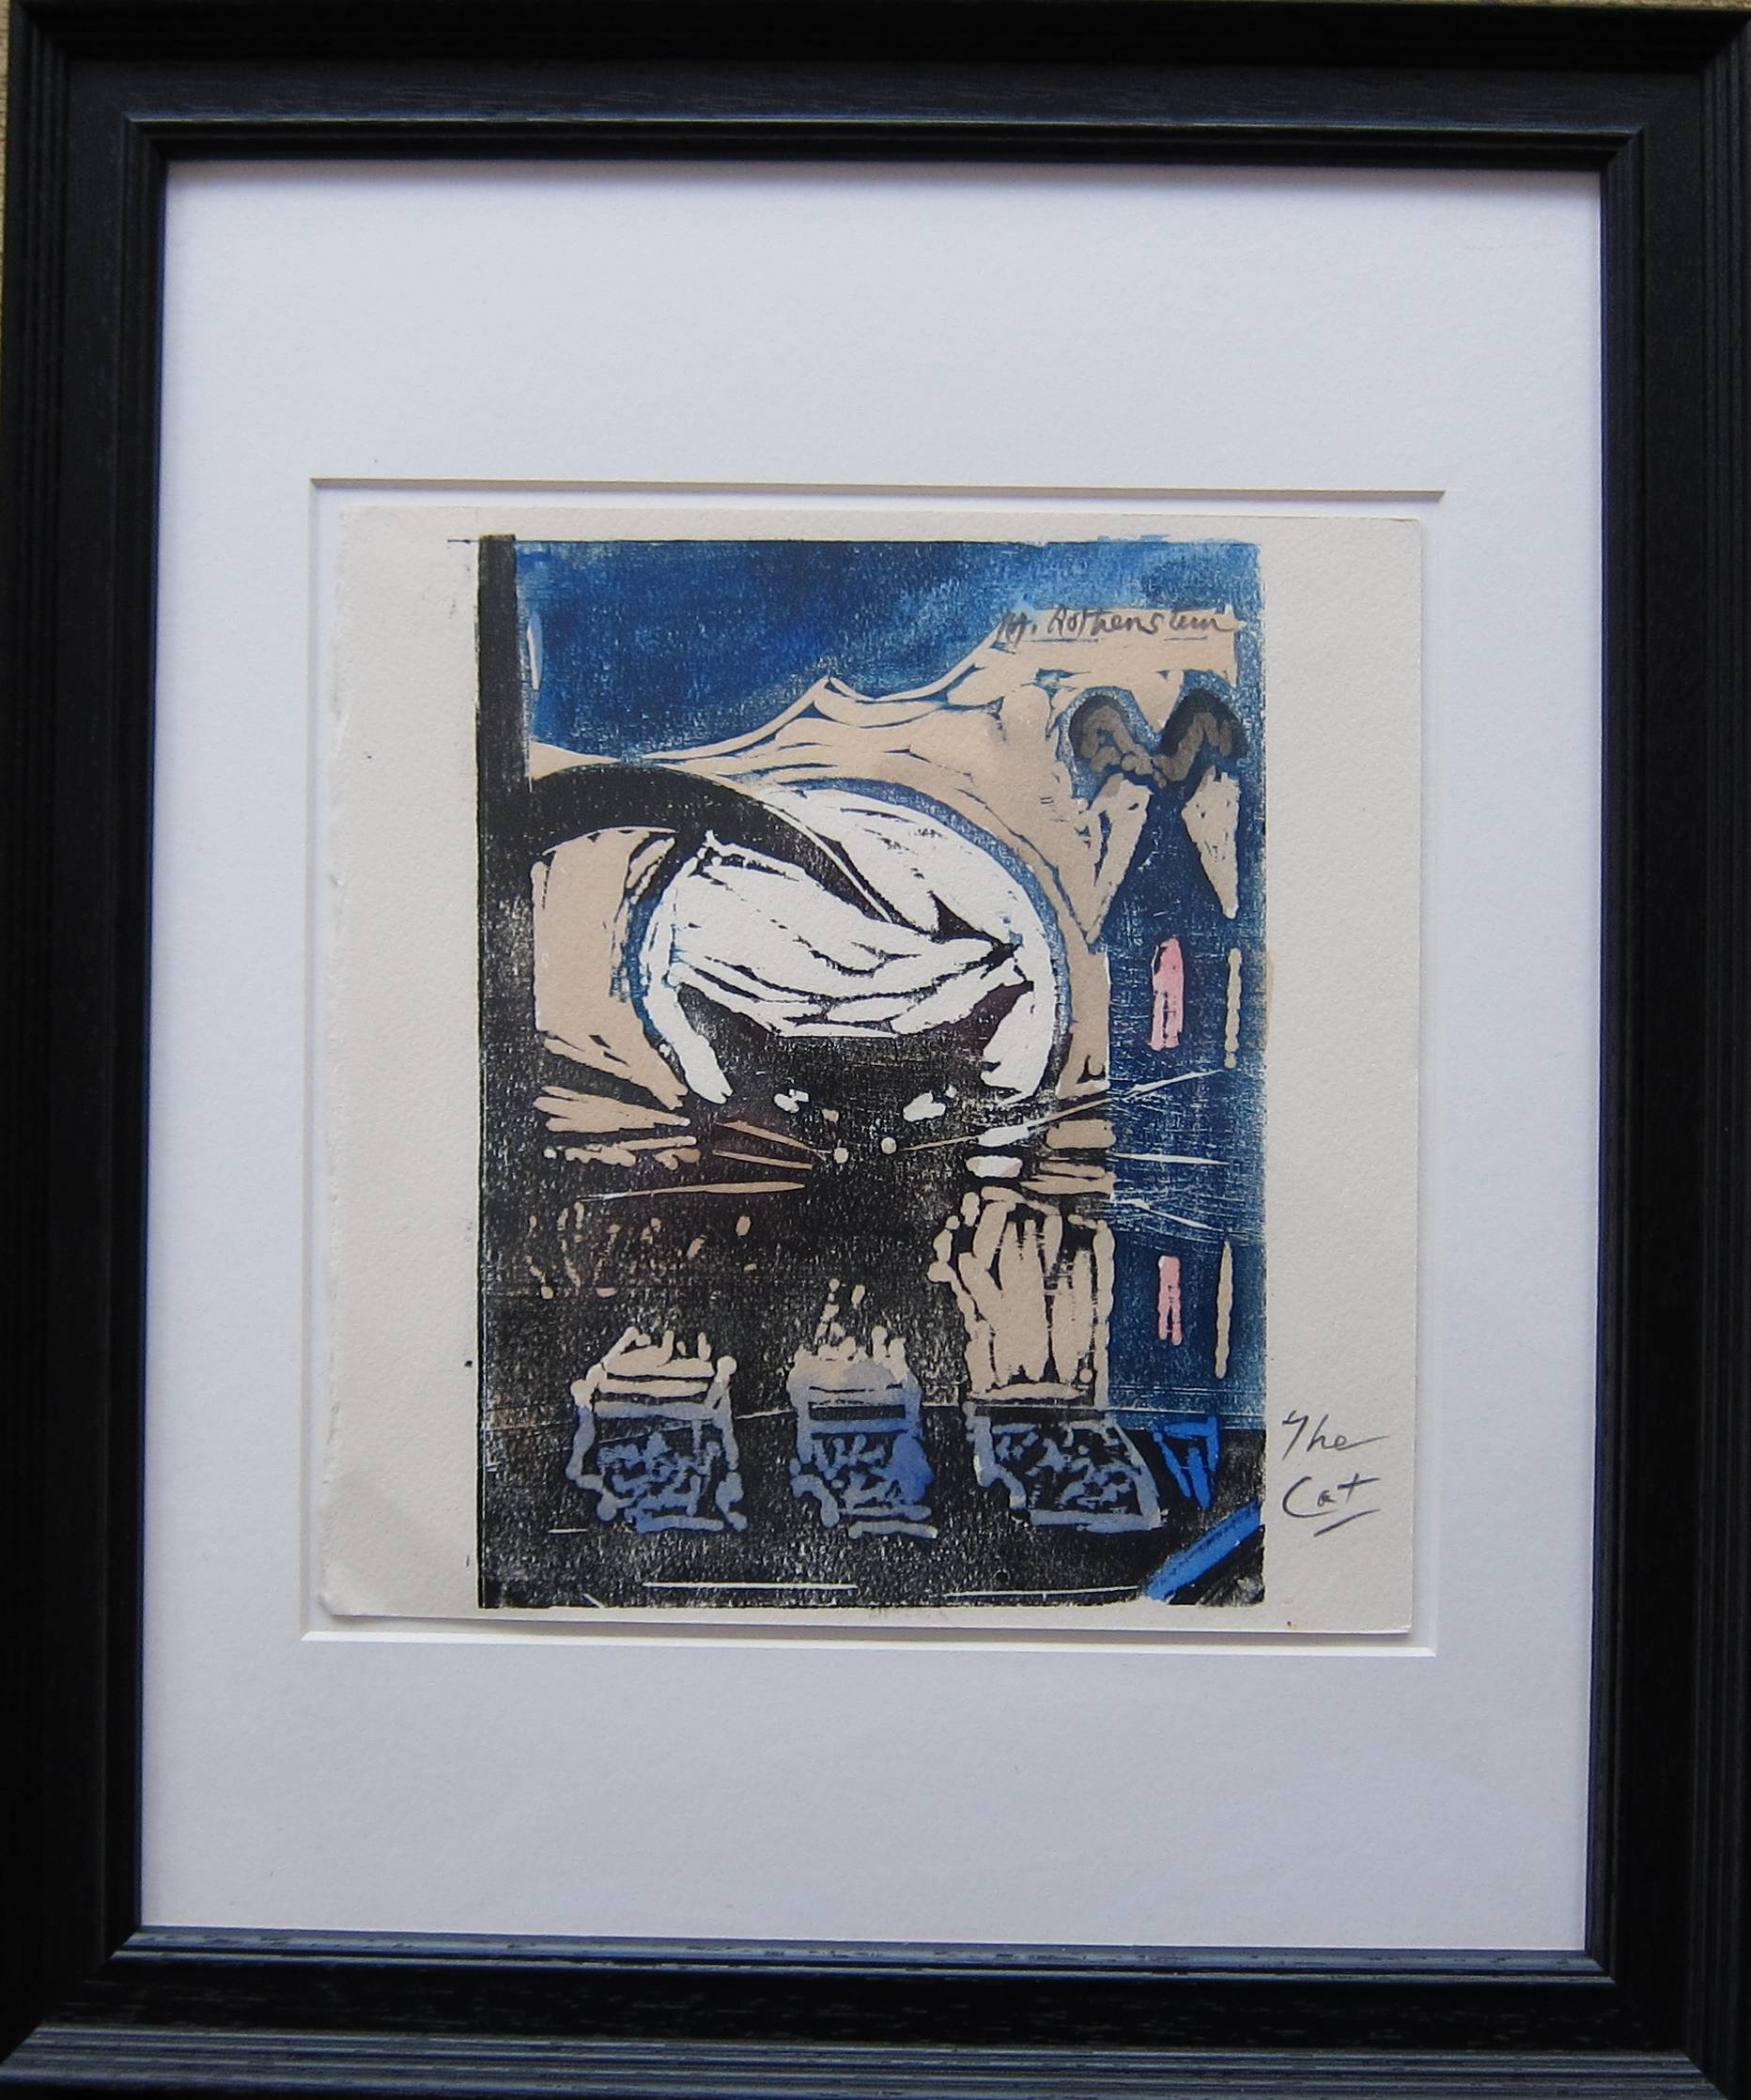 Lot 39 - MICHAEL ROTHENSTEIN R.A. [1908-93]. The Cat. woodcut [with some hand-colouring ?] artist's proof -